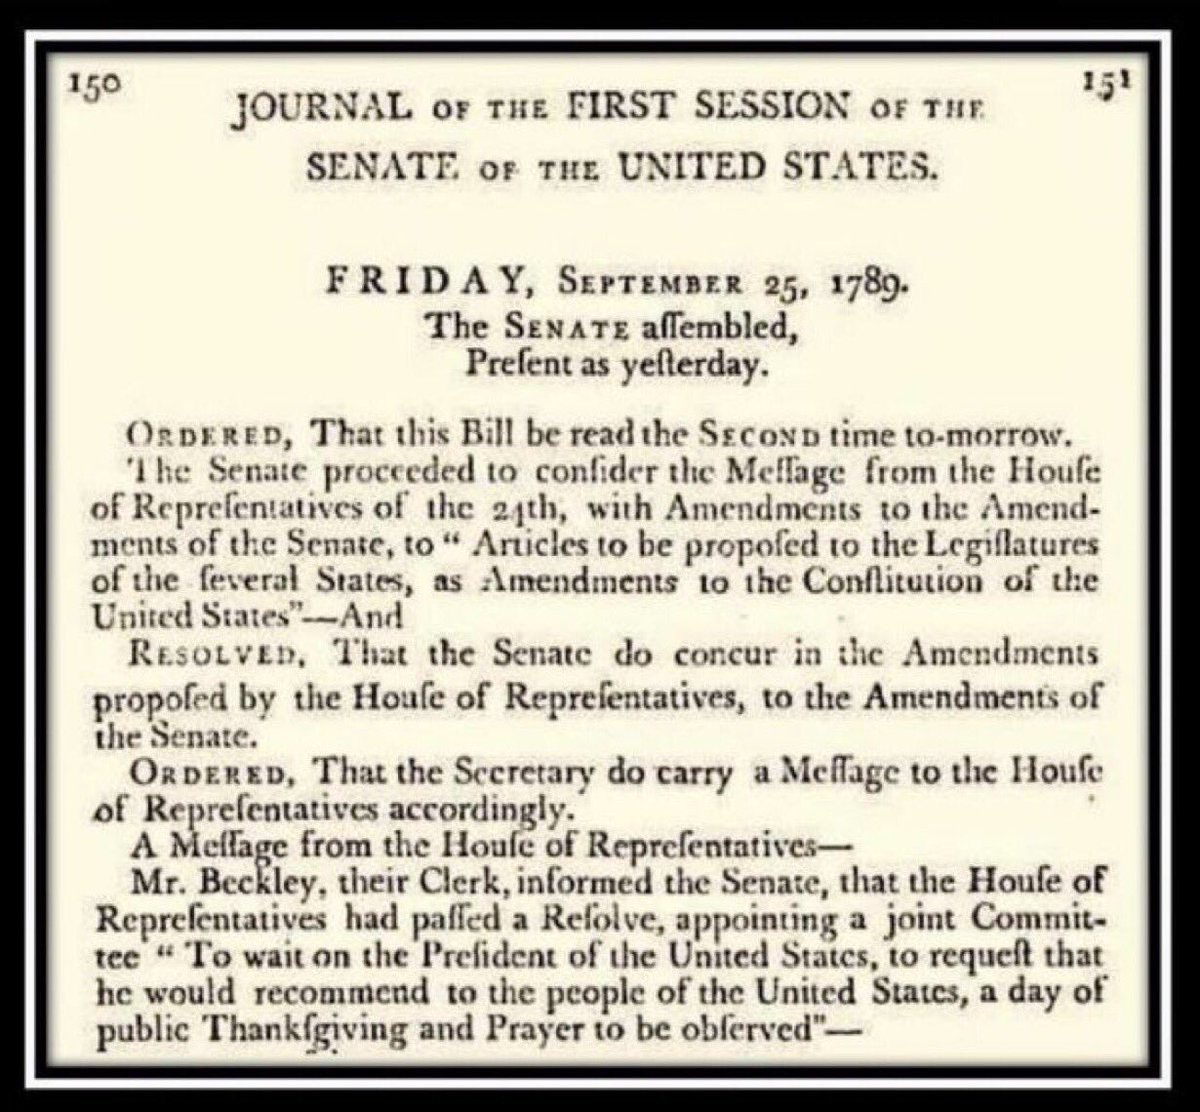 Congress sent Bill of Rights and two other proposed Constitutional amendments to the states, 230 years ago today: